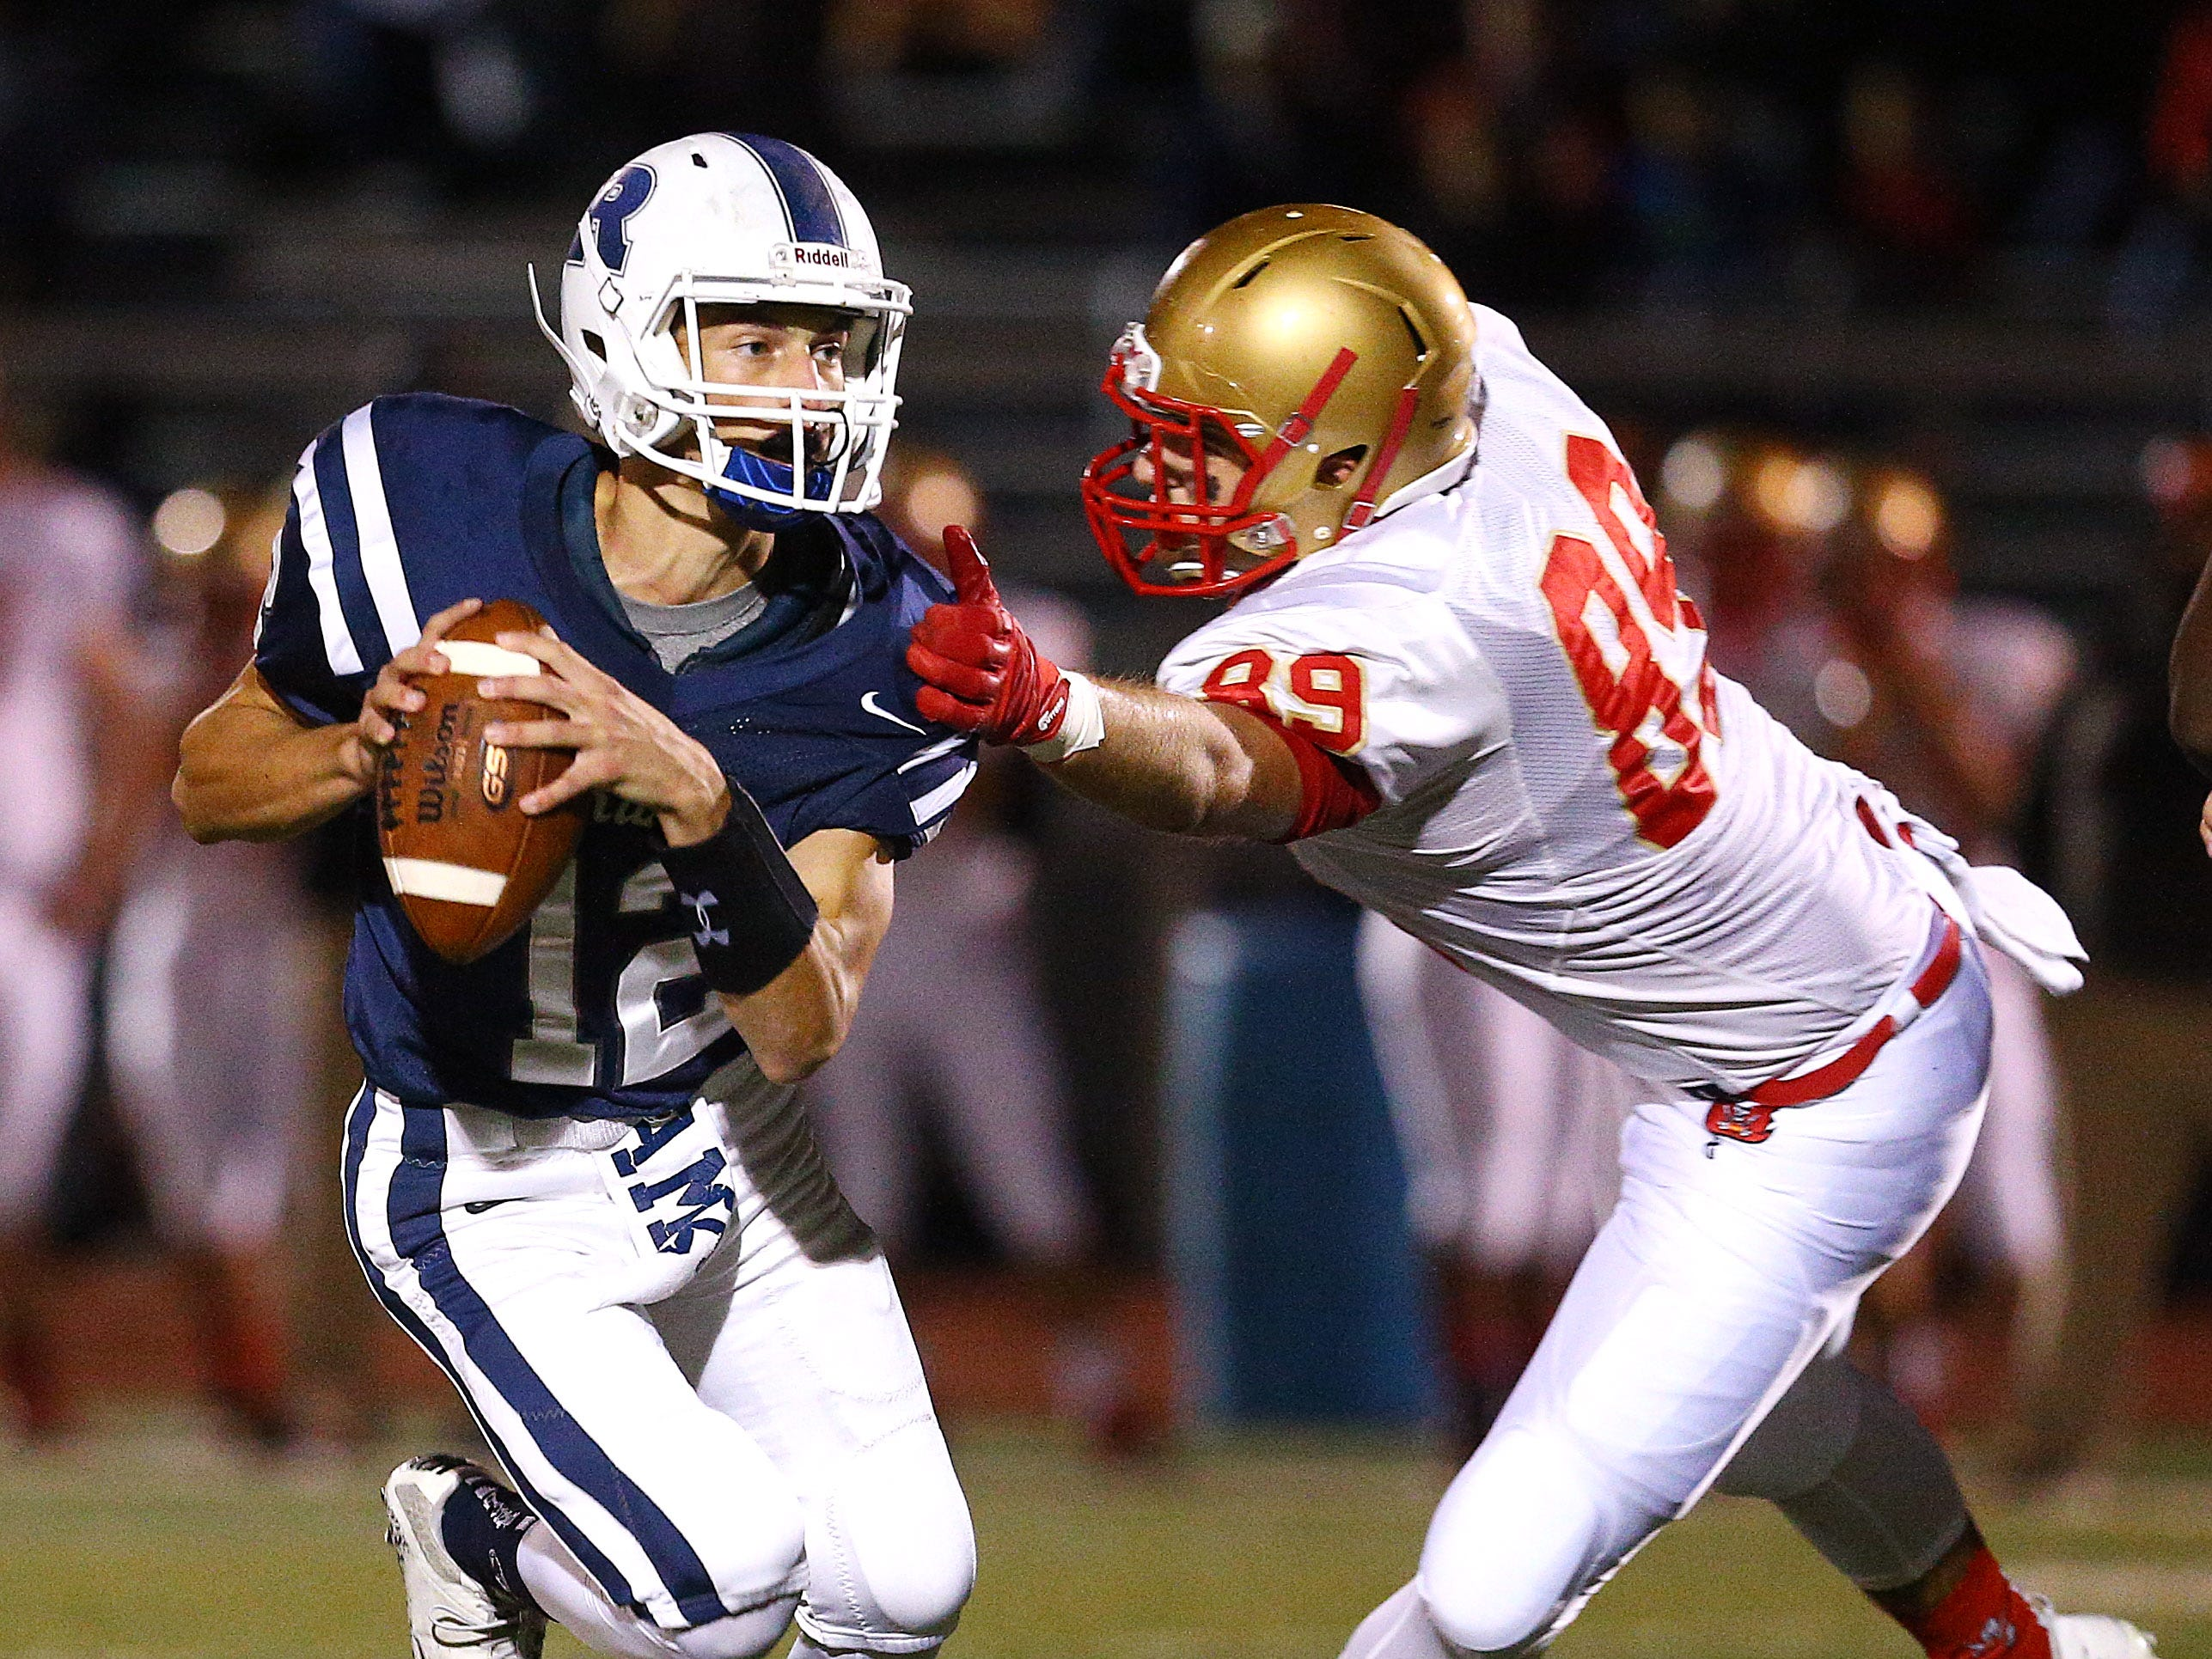 Randolph quarterback Anthony Sofia avoids a tackle by Mount Olive DT Chris Carpini during their SFC Freedom Blue Friday night football game. September 28, 2018, Randolph, NJ